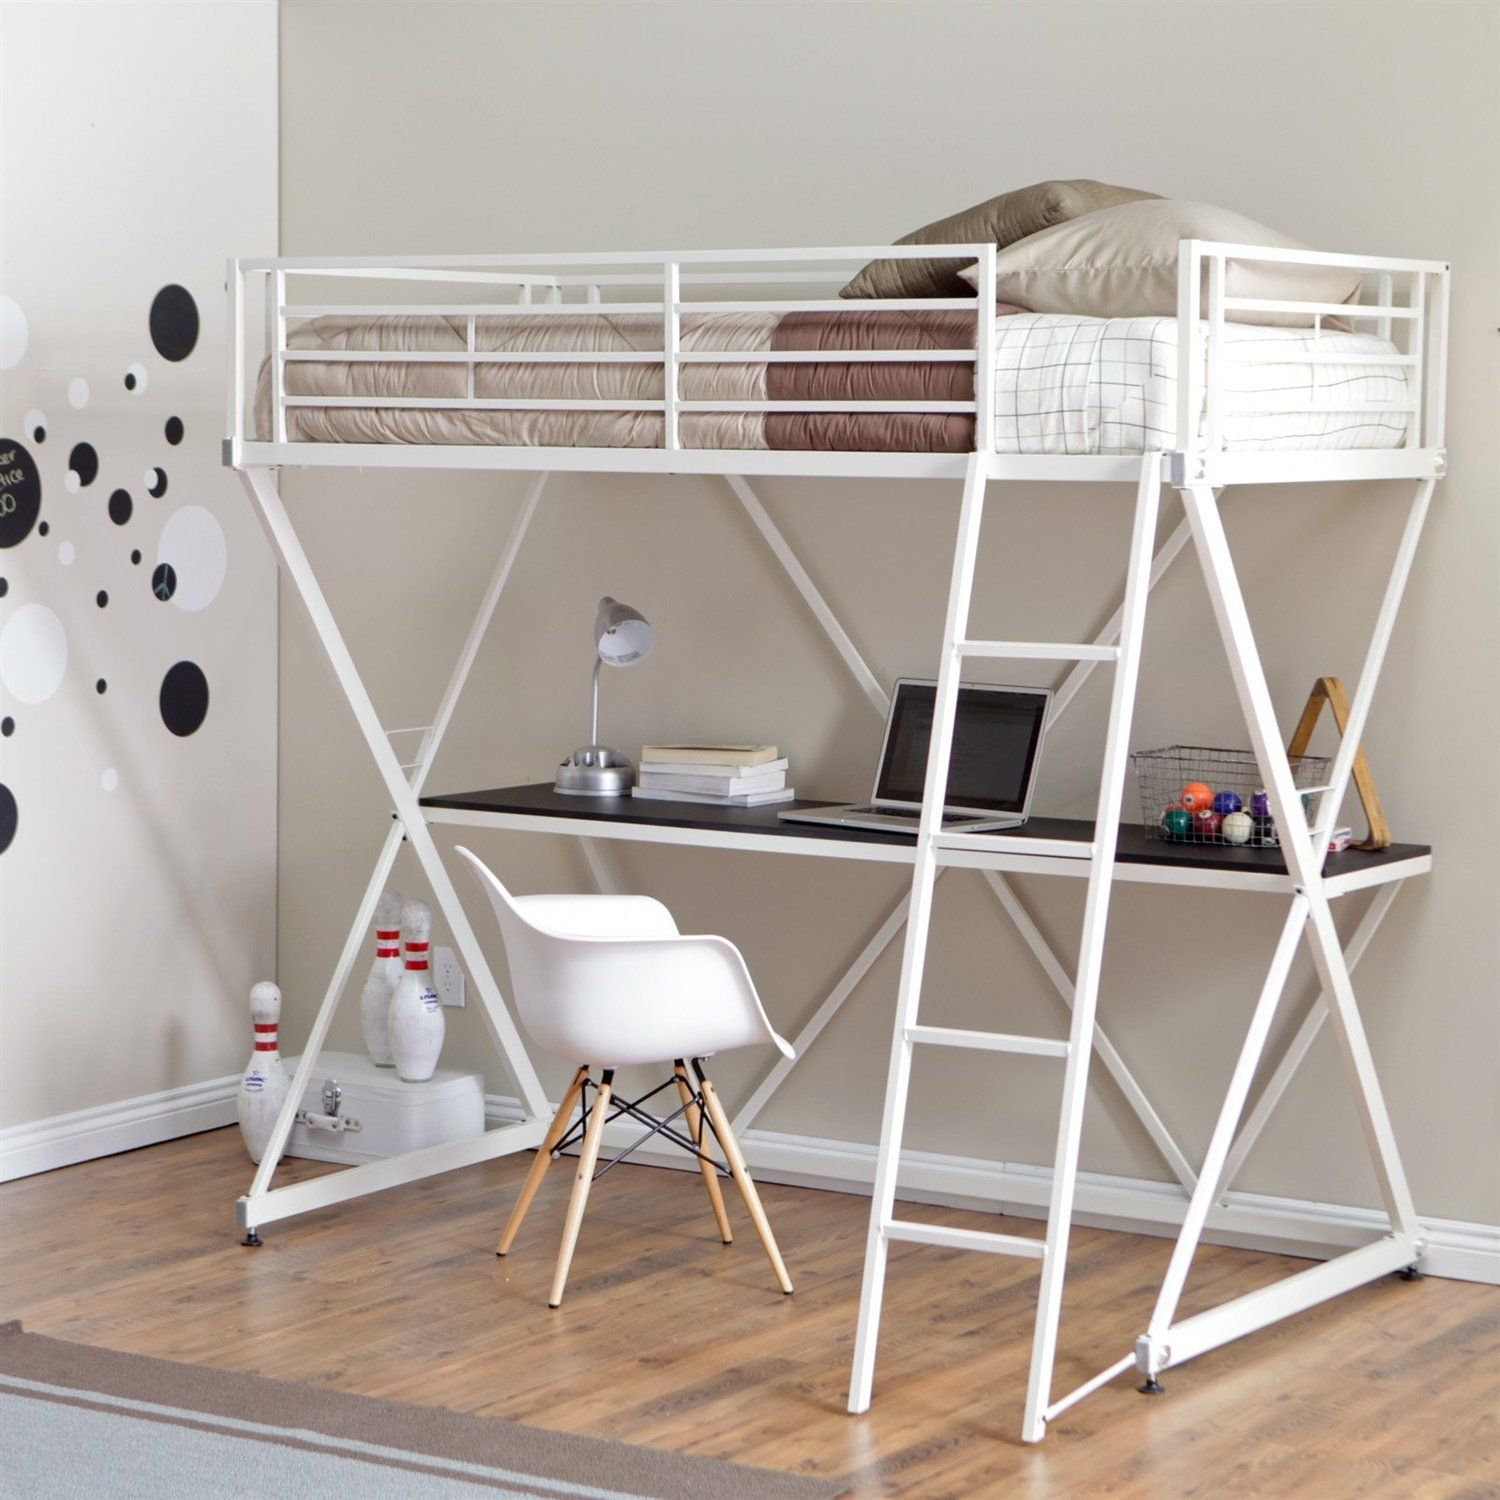 Best This Modern Twin Size Bunk Bed Loft With Desk In White 400 x 300